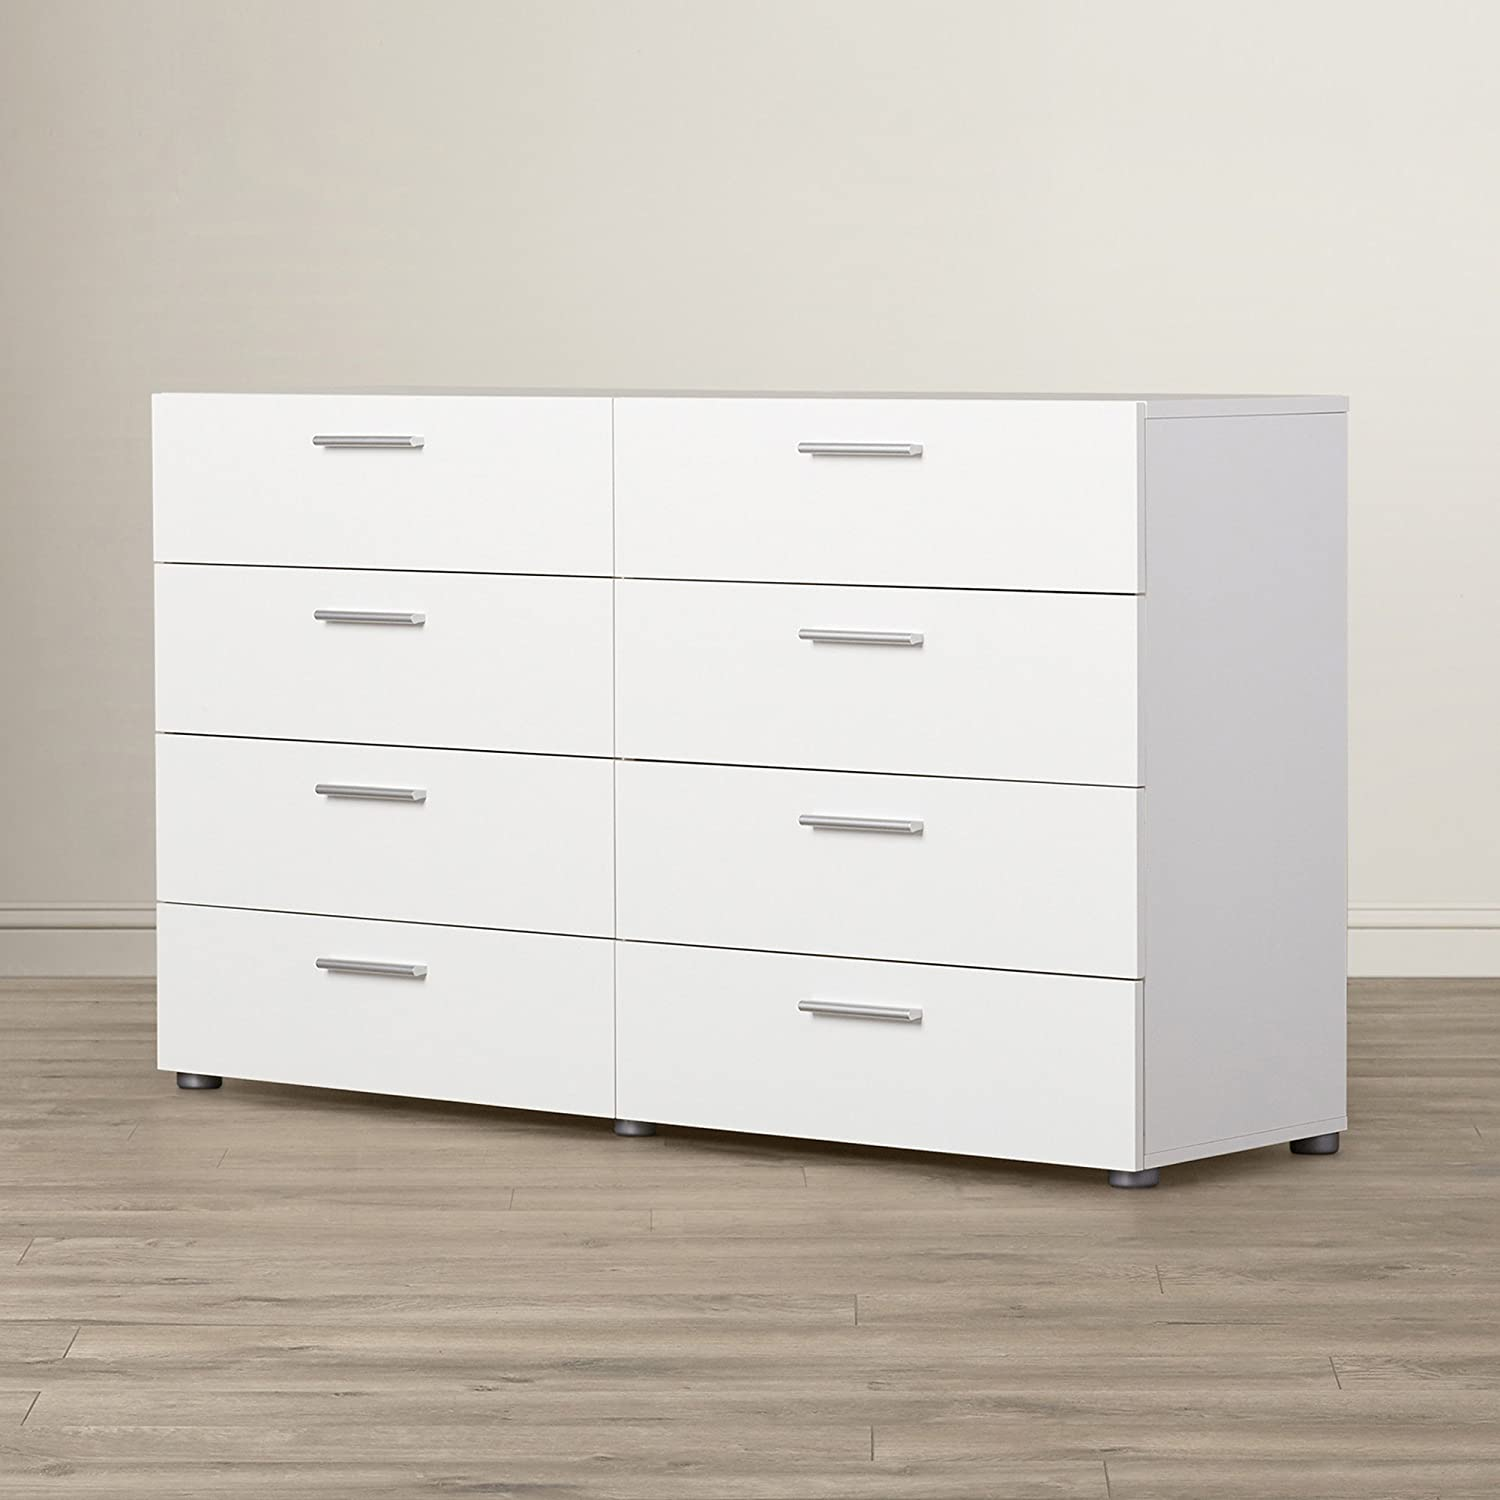 Amazon com white dresser with 8 drawers contemporary piece of bedroom furniture storage chest clothes organizer modern design 55 x 32 x 16